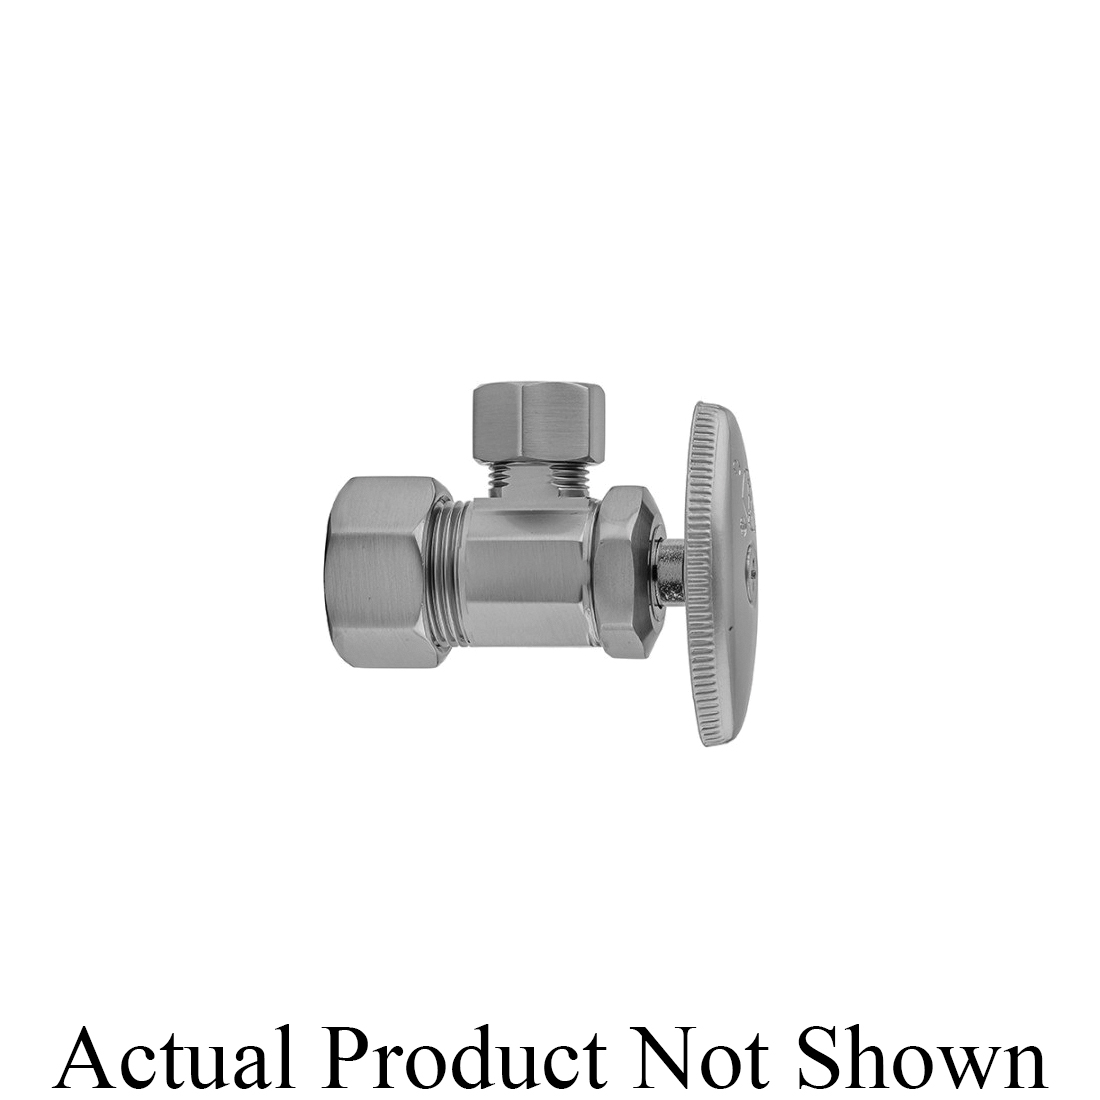 Jaclo® 5812-ORB Supply Valve With Oval Handle, 5/8 x 3/8 in Nominal, Compression, Brass Body, Oil Rubbed Bronze